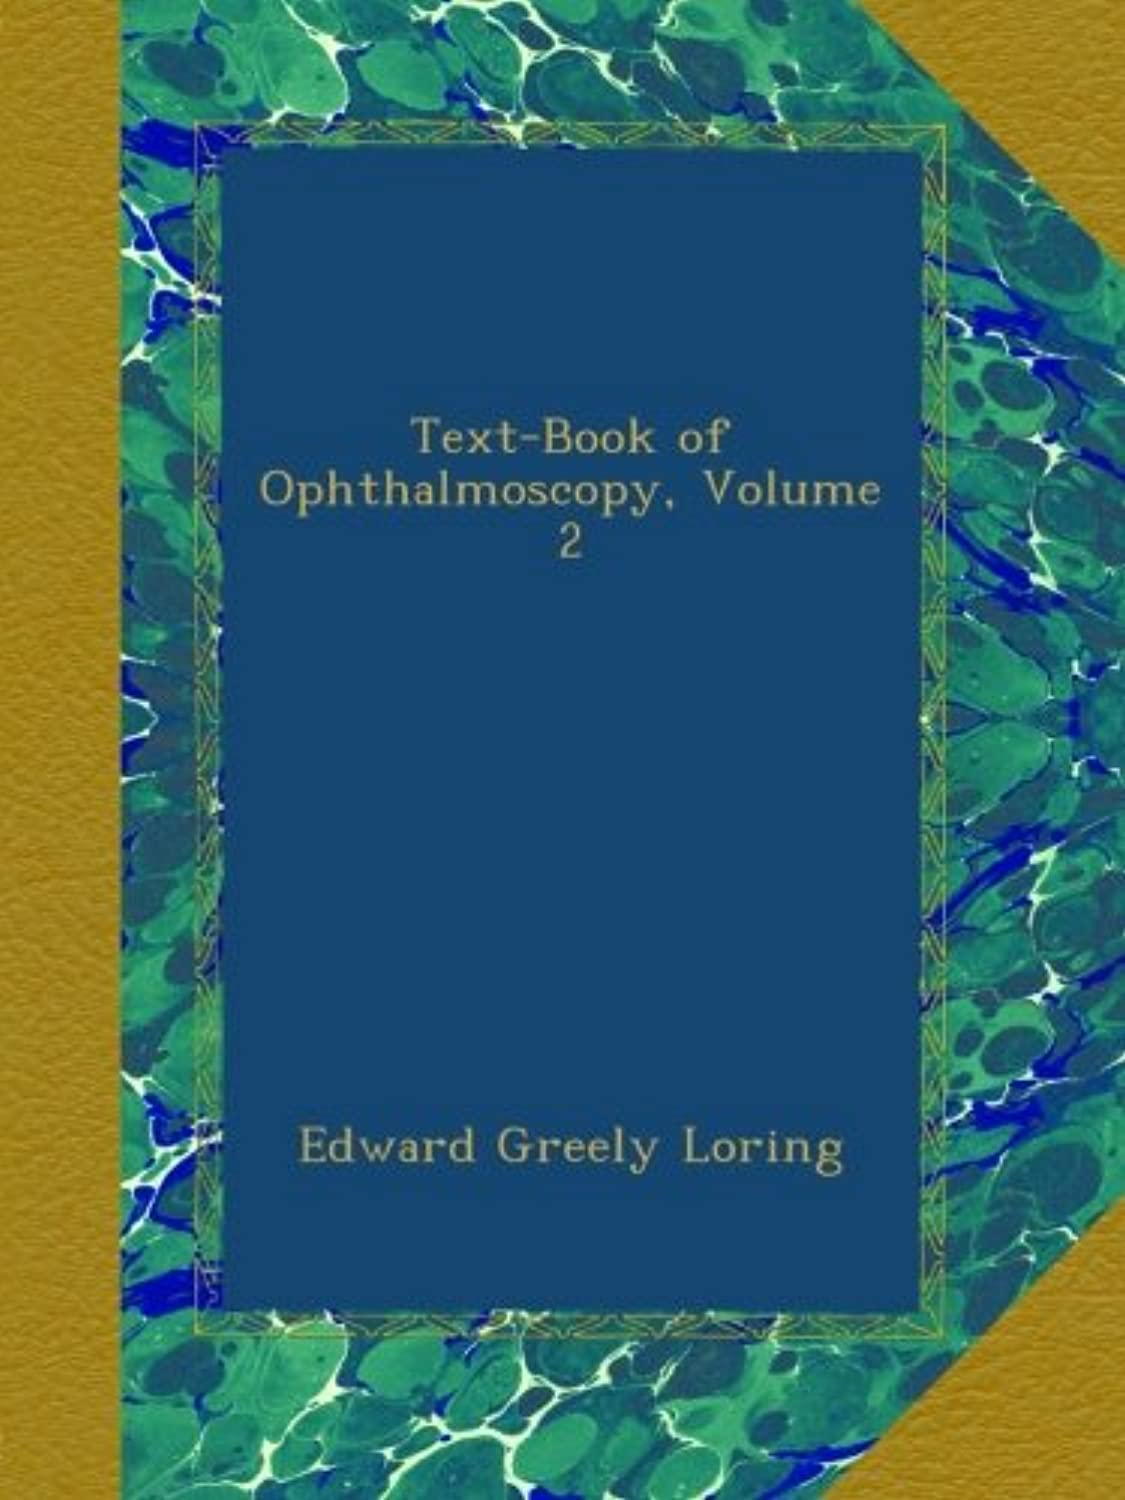 Text-Book of Ophthalmoscopy, Volume 2